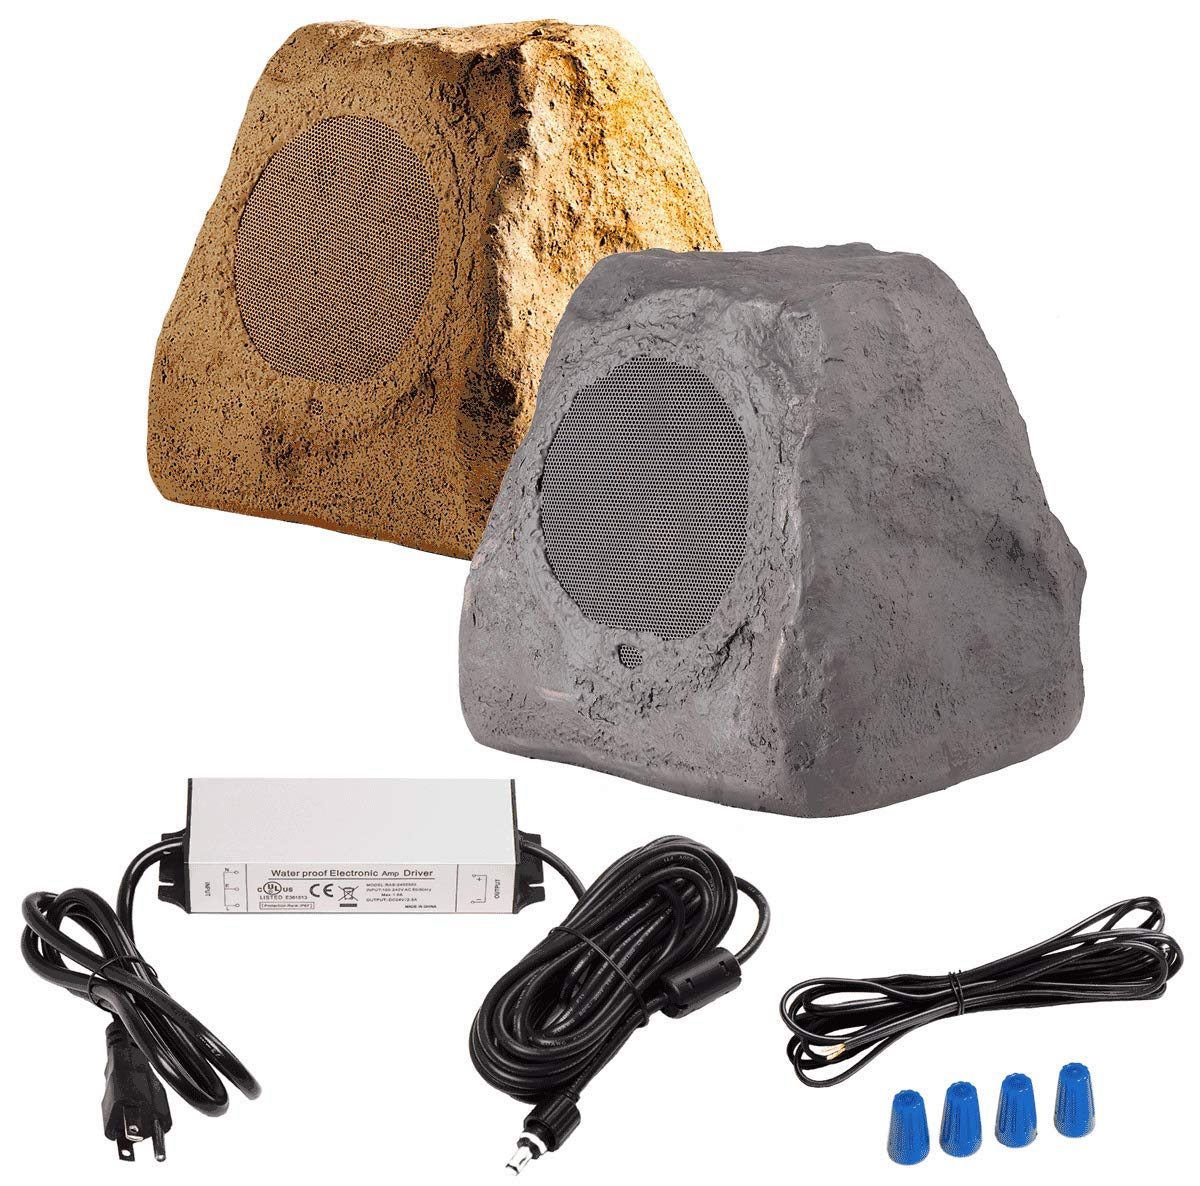 OSD Audio 5.25'' 120W Bluetooth Outdoor Rock Speaker - Weather Resistant, Sandstone Canyon Brown - BTR-150 by OSD Audio